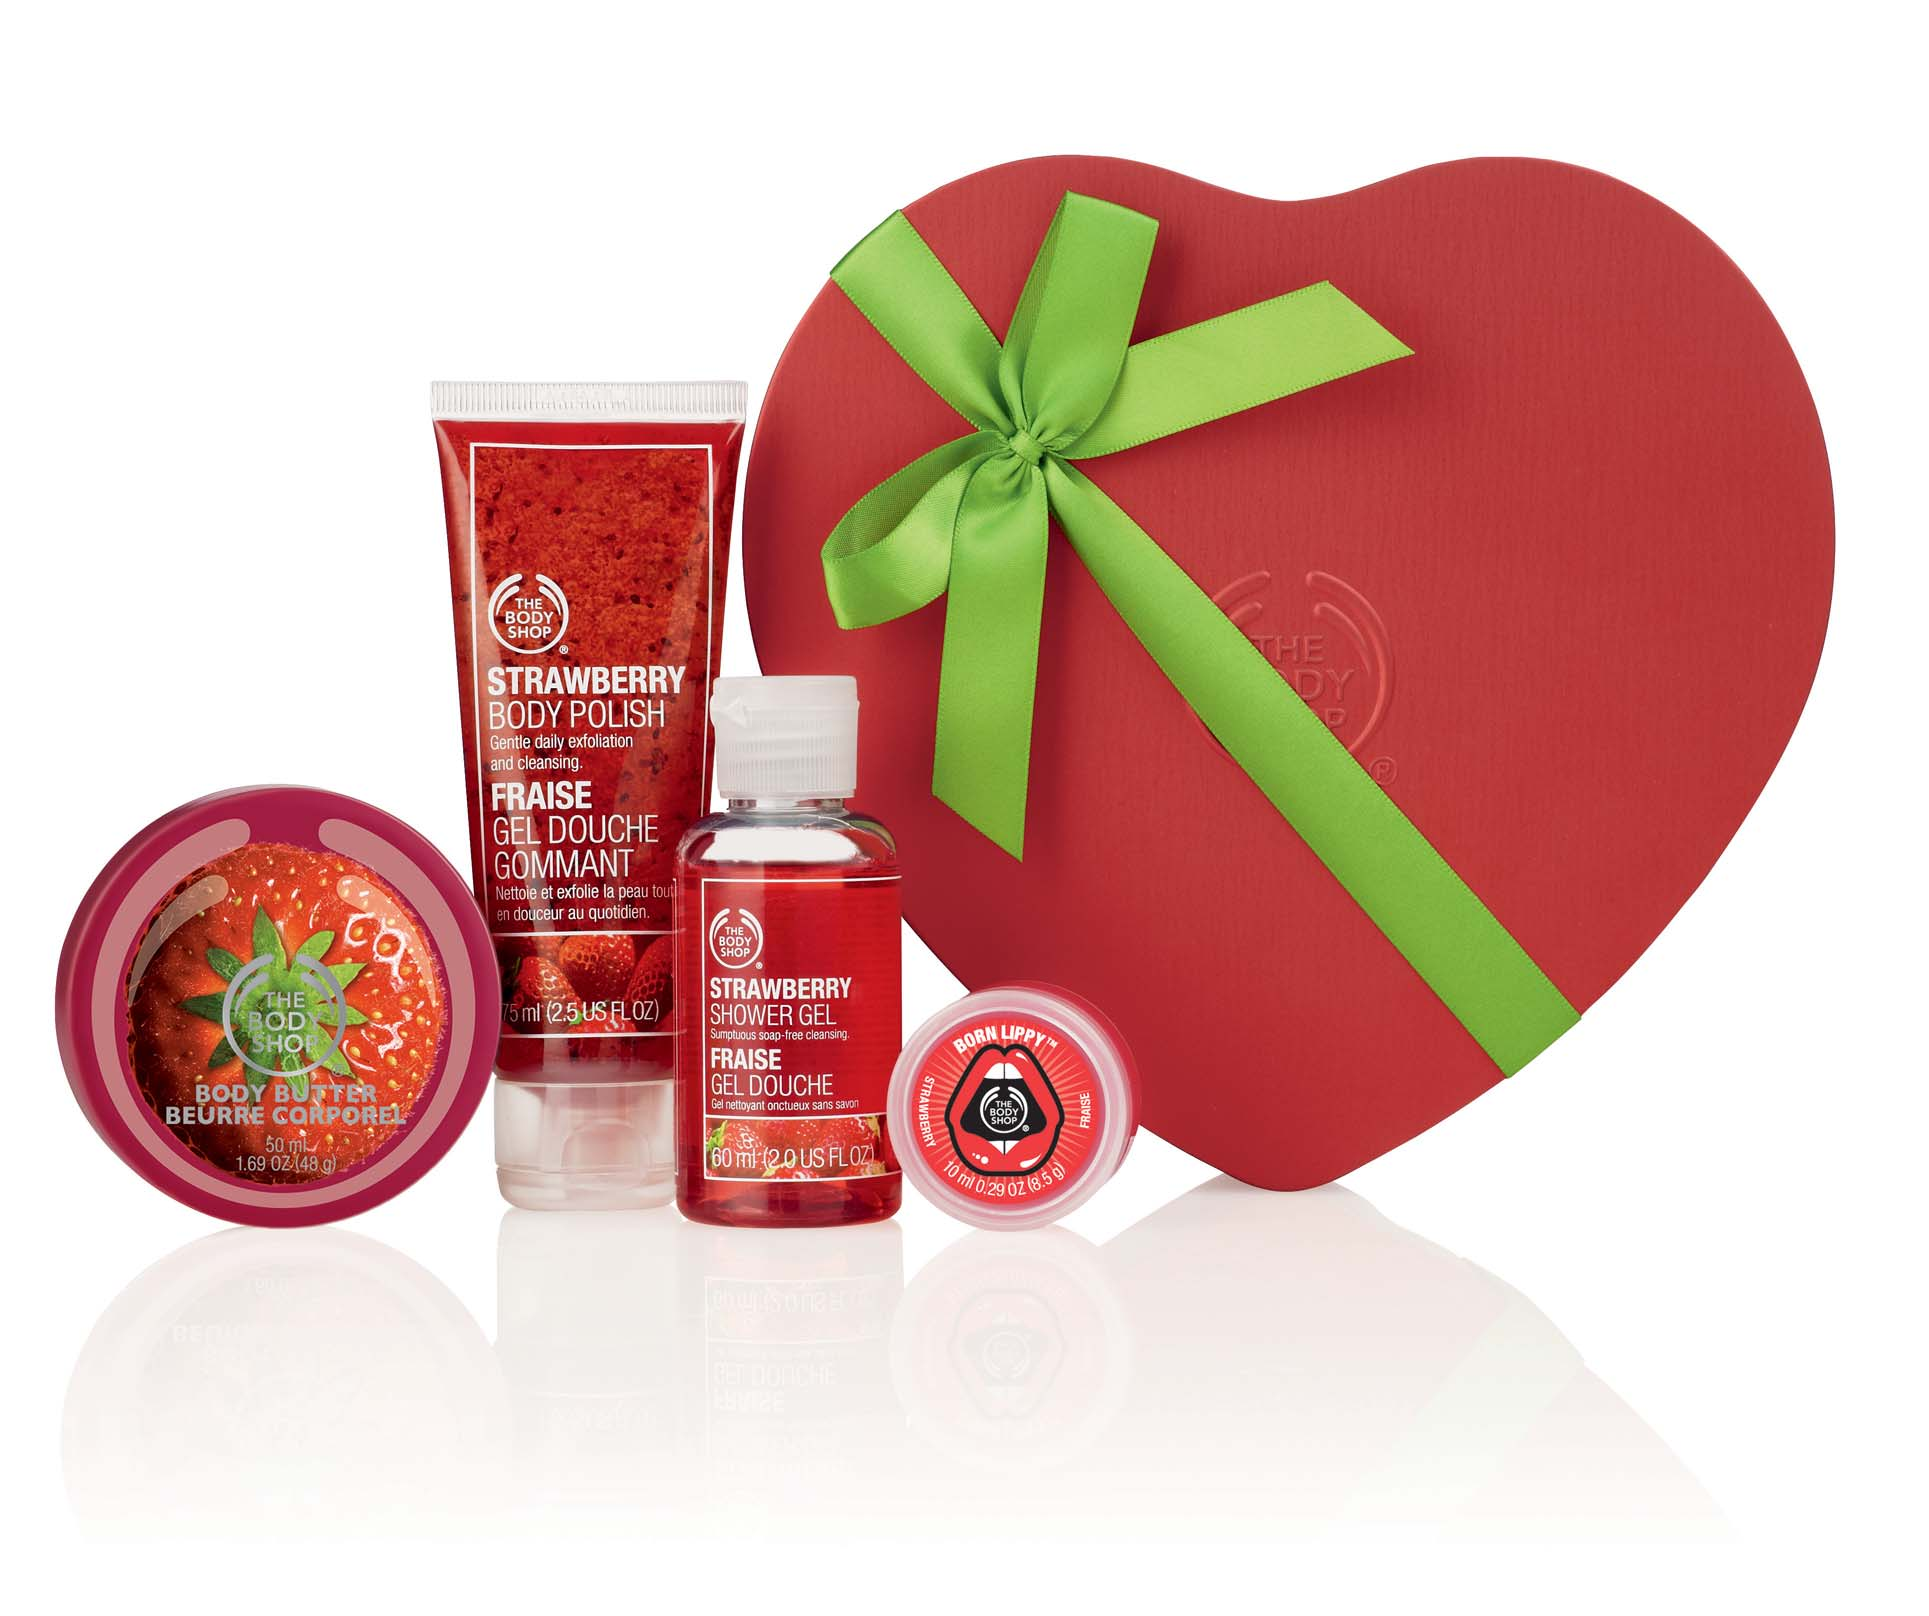 THE BODY SHOP GIFT HEART TIN, Rs 1795